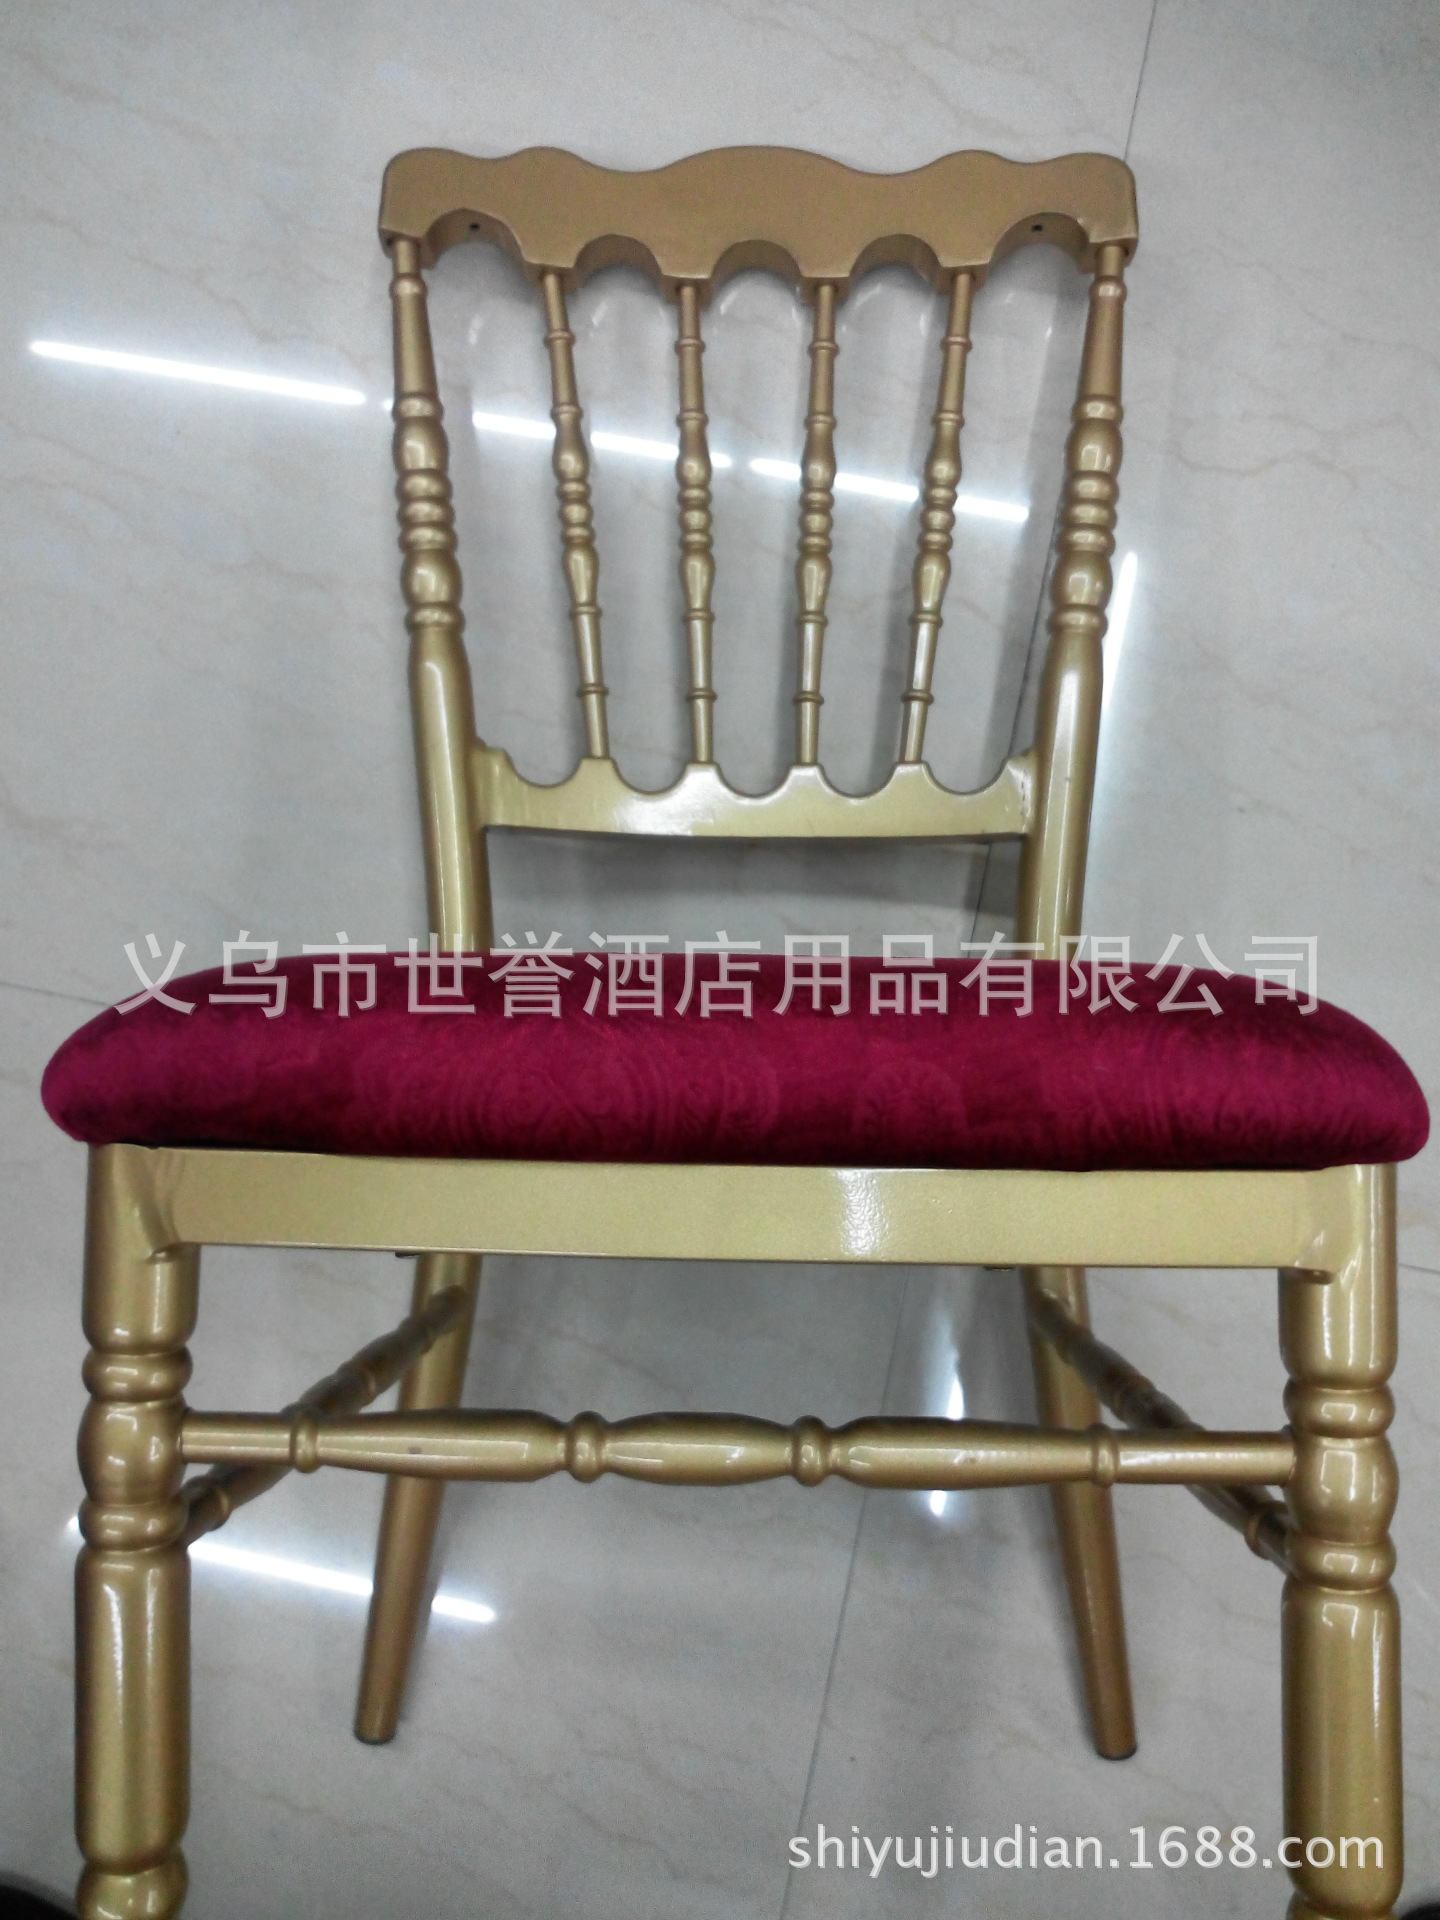 bamboo folding chairs wedding chair legs wood supply foreign trade aluminum alloy crown castle